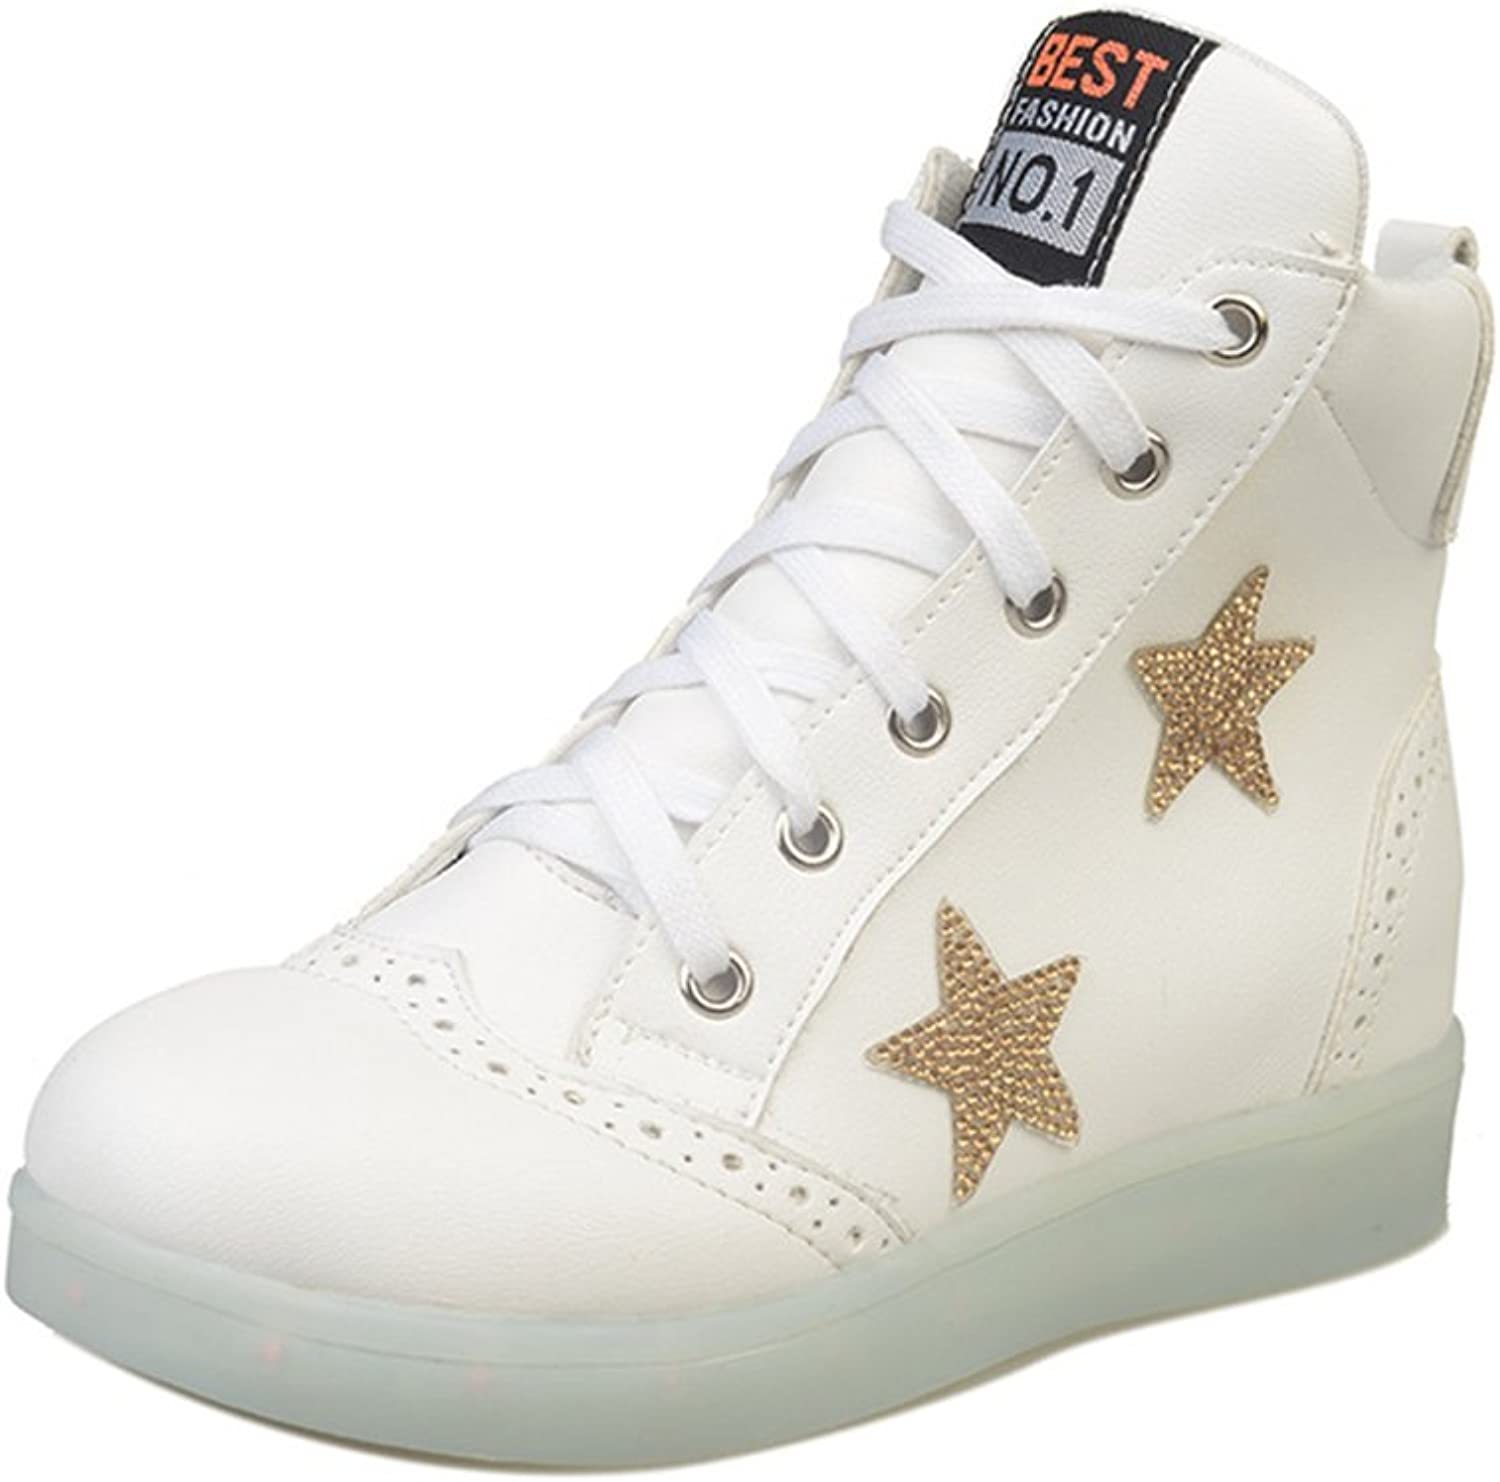 A2kmsmss5a Cool High Top USB Charging LED shoes Flashing Sneaker for Women Girls